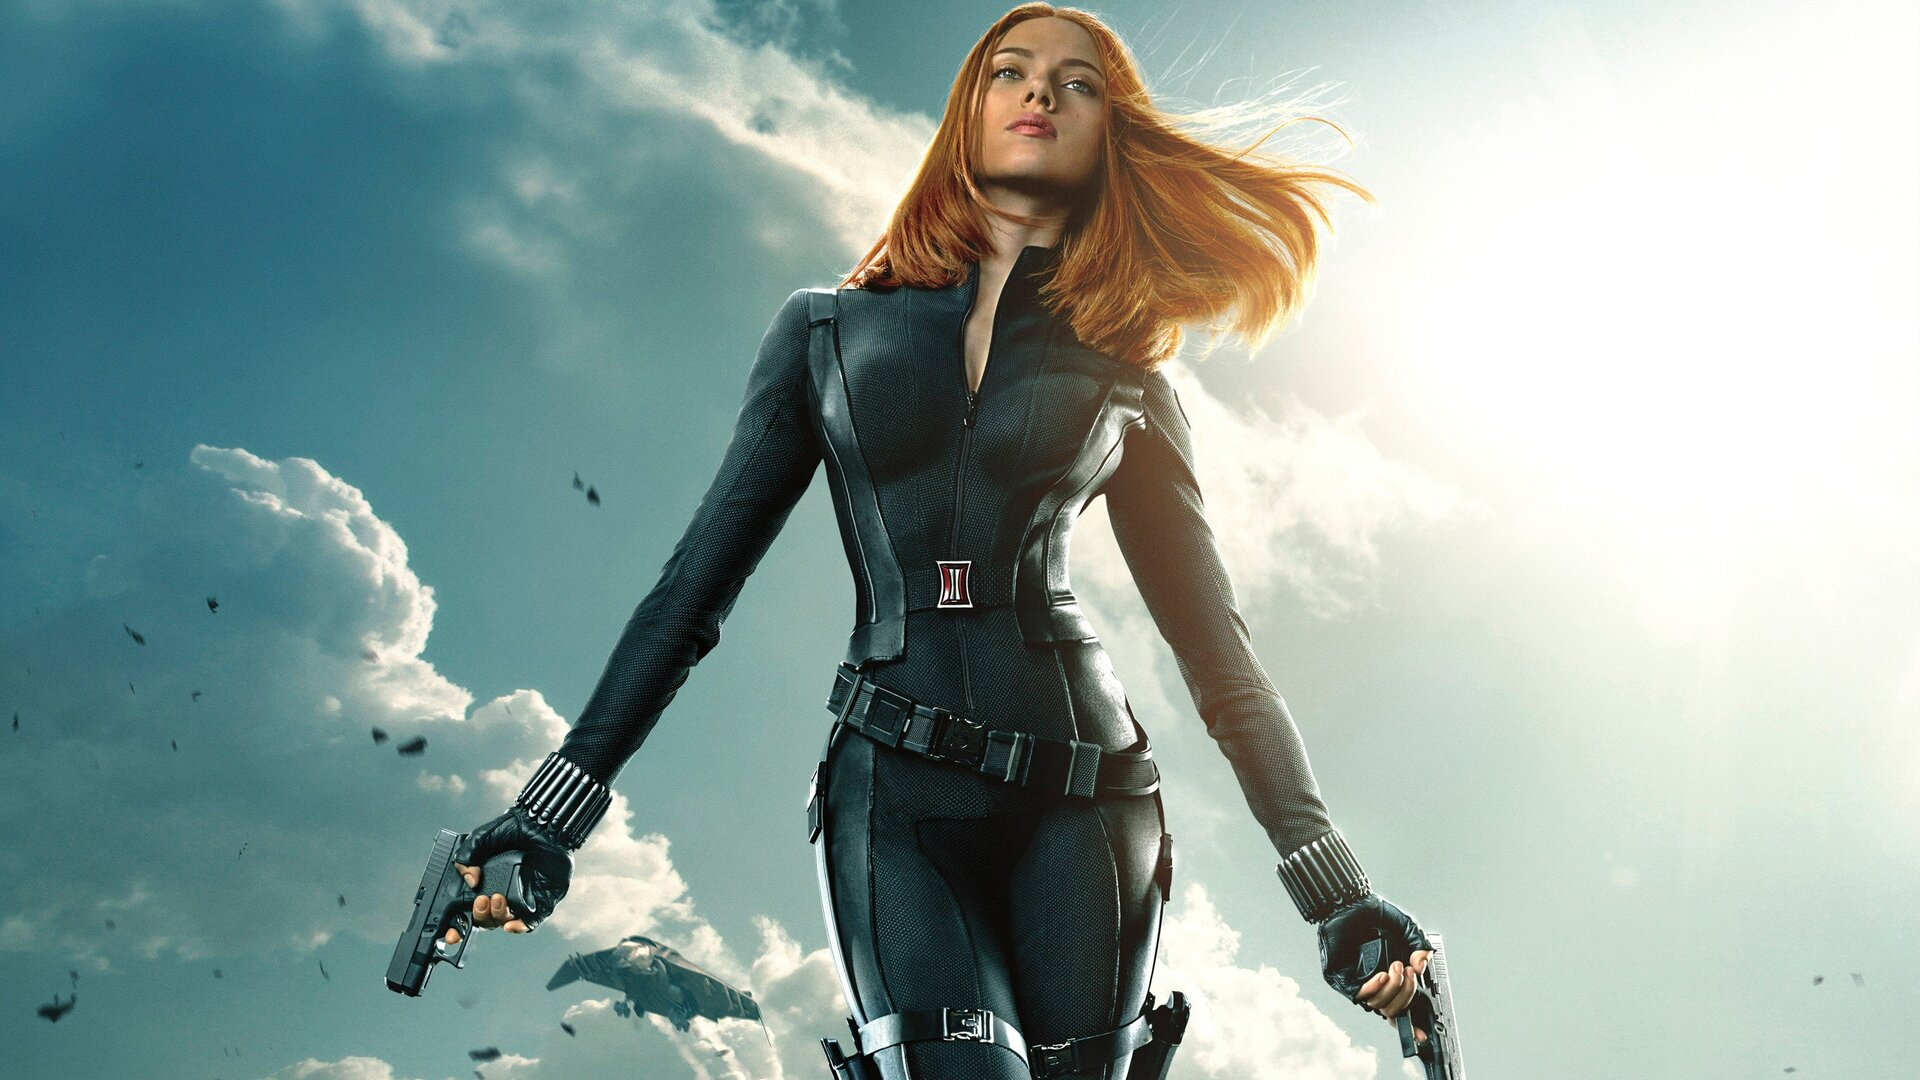 1920x1080 Black Widow Full Hd Laptop Full Hd 1080p Hd 4k Wallpapers